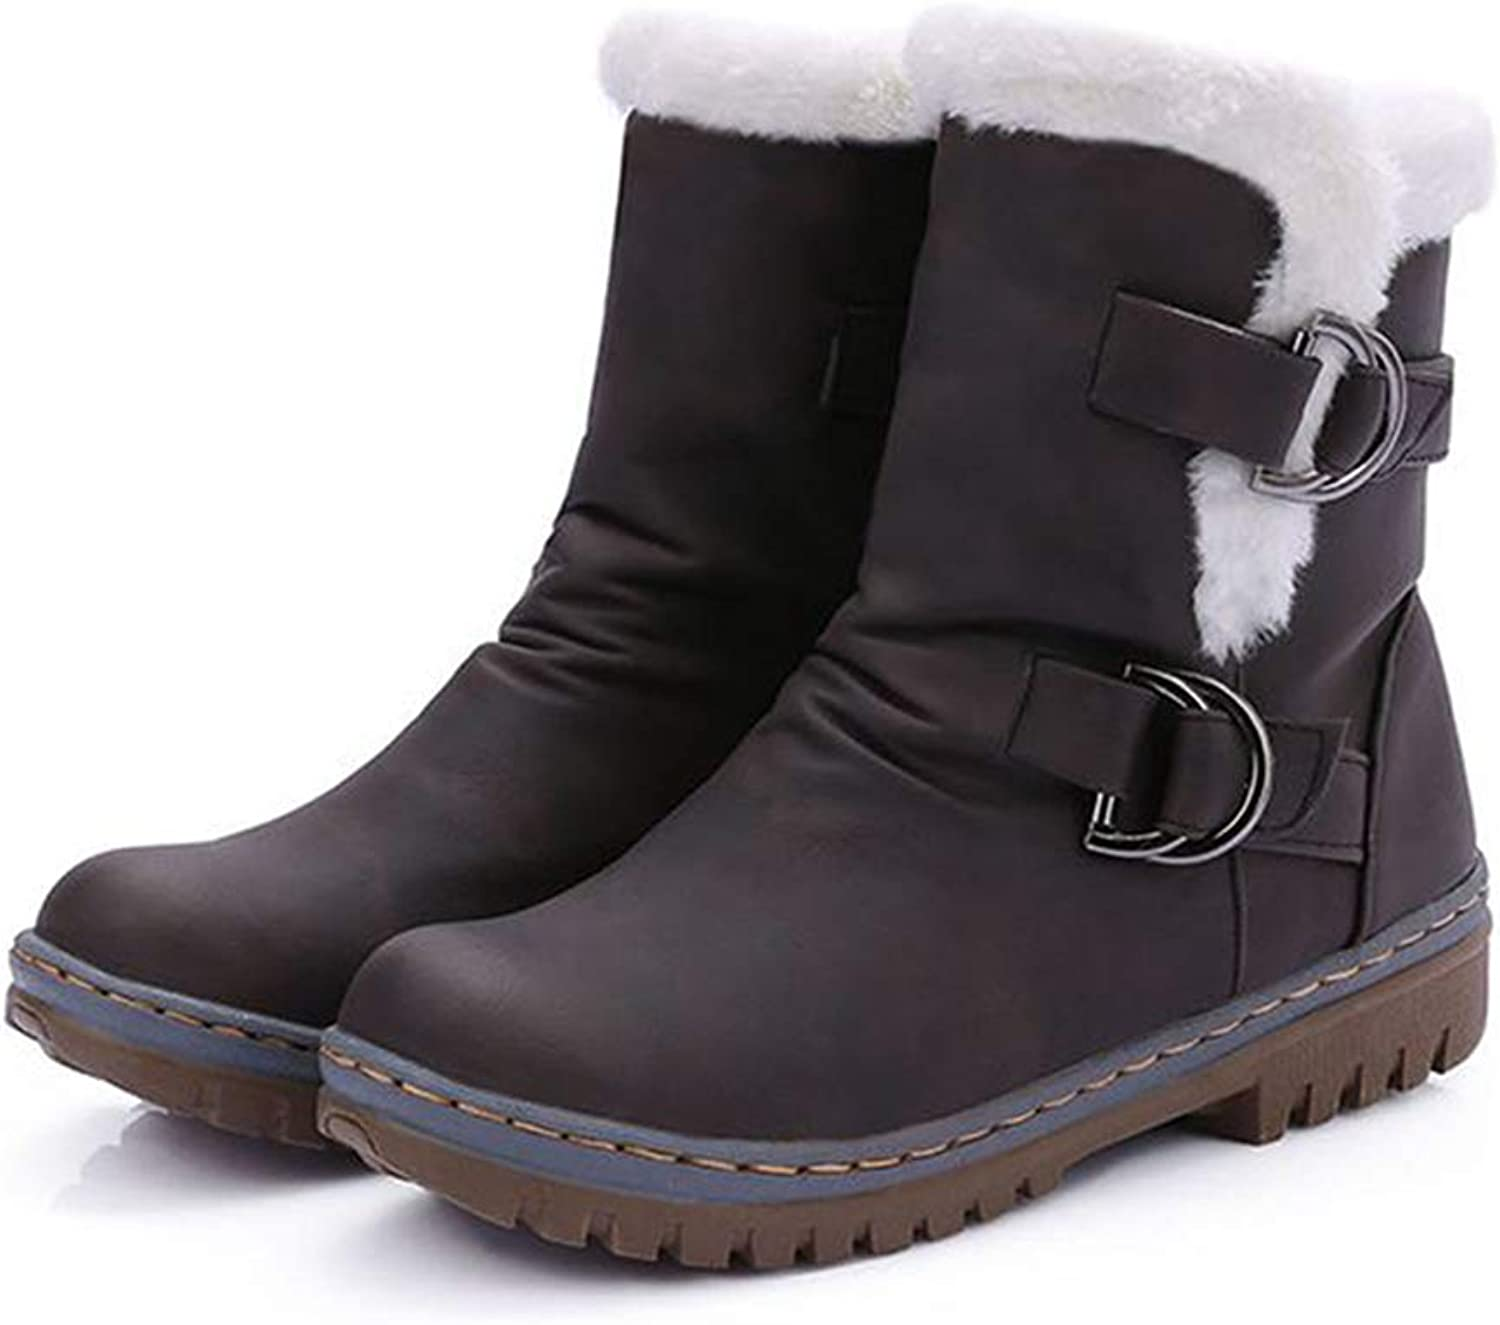 Women's Winter Snow Boots Suede Low Heel Warm shoes Buckle Strap Plush Lining Booties